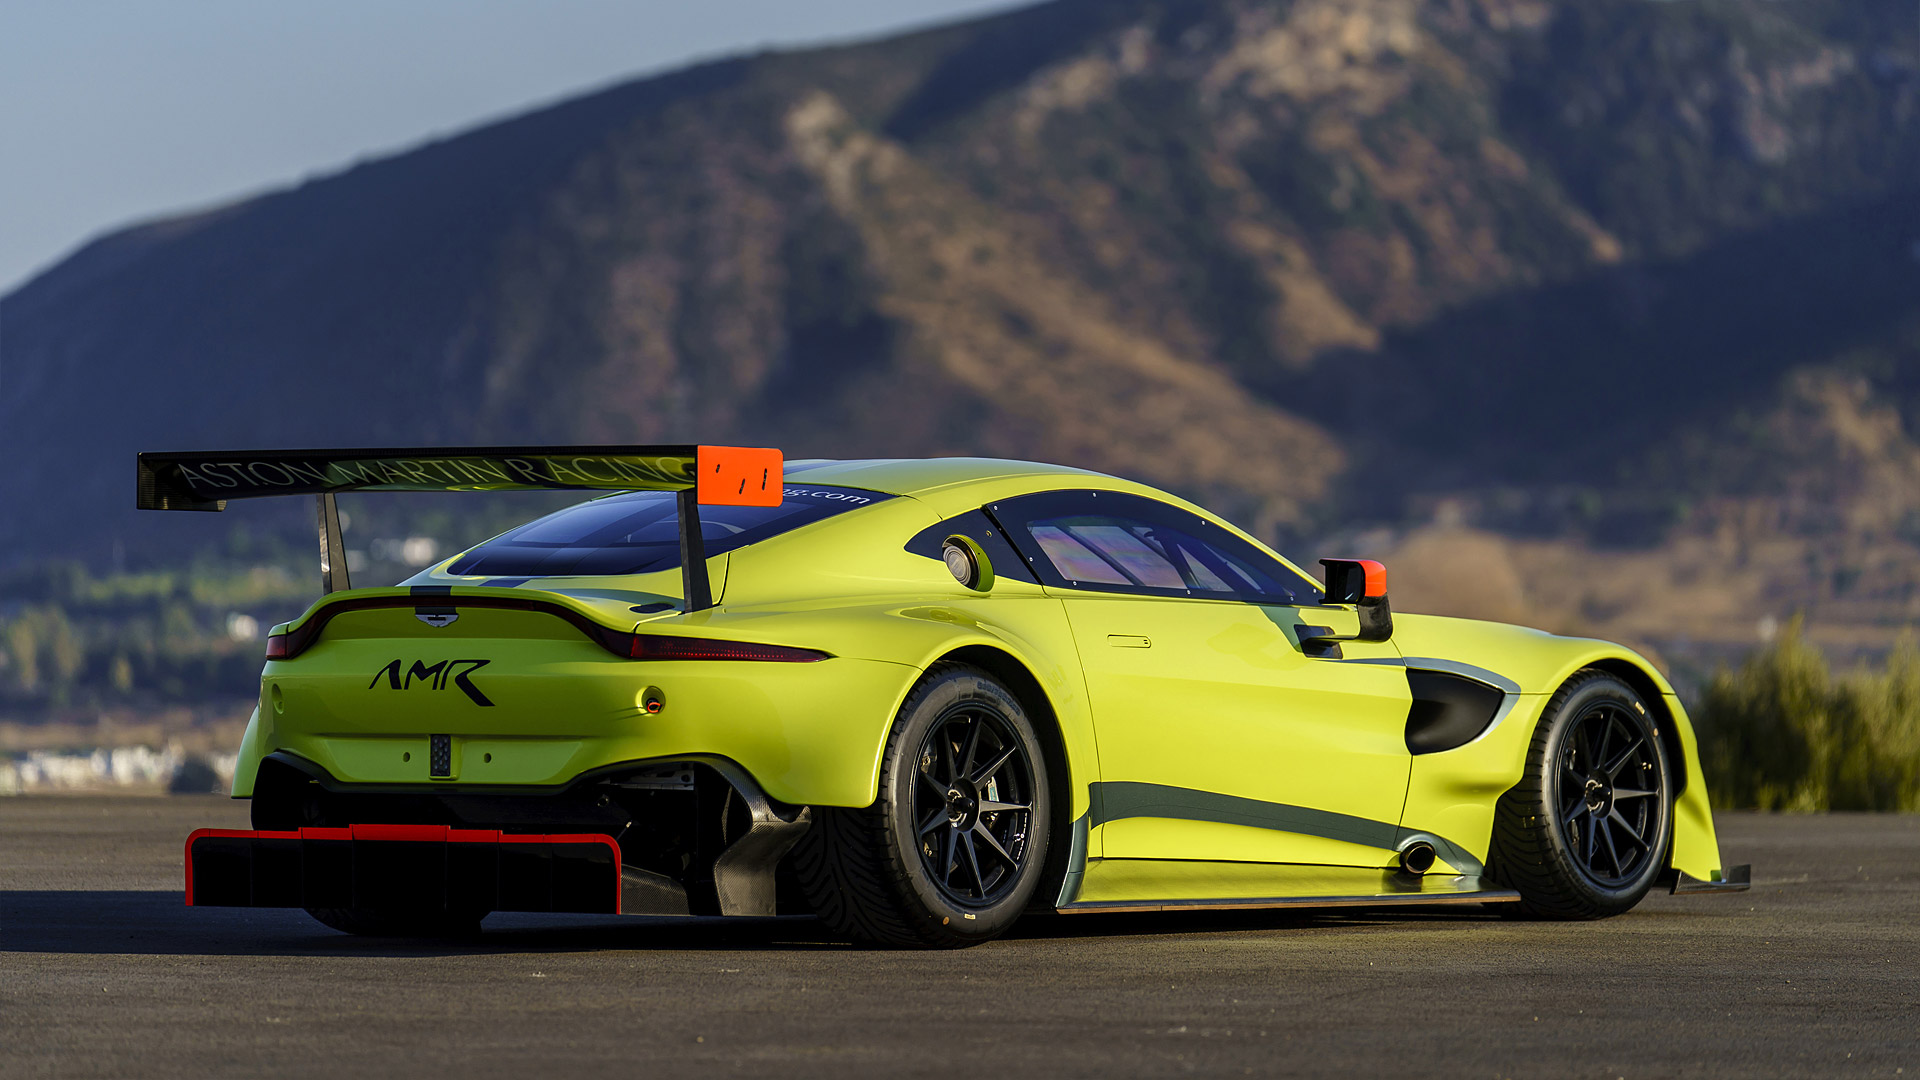 2018 Aston Martin Vantage GTE Wallpapers HD Images   WSupercars 1920x1080